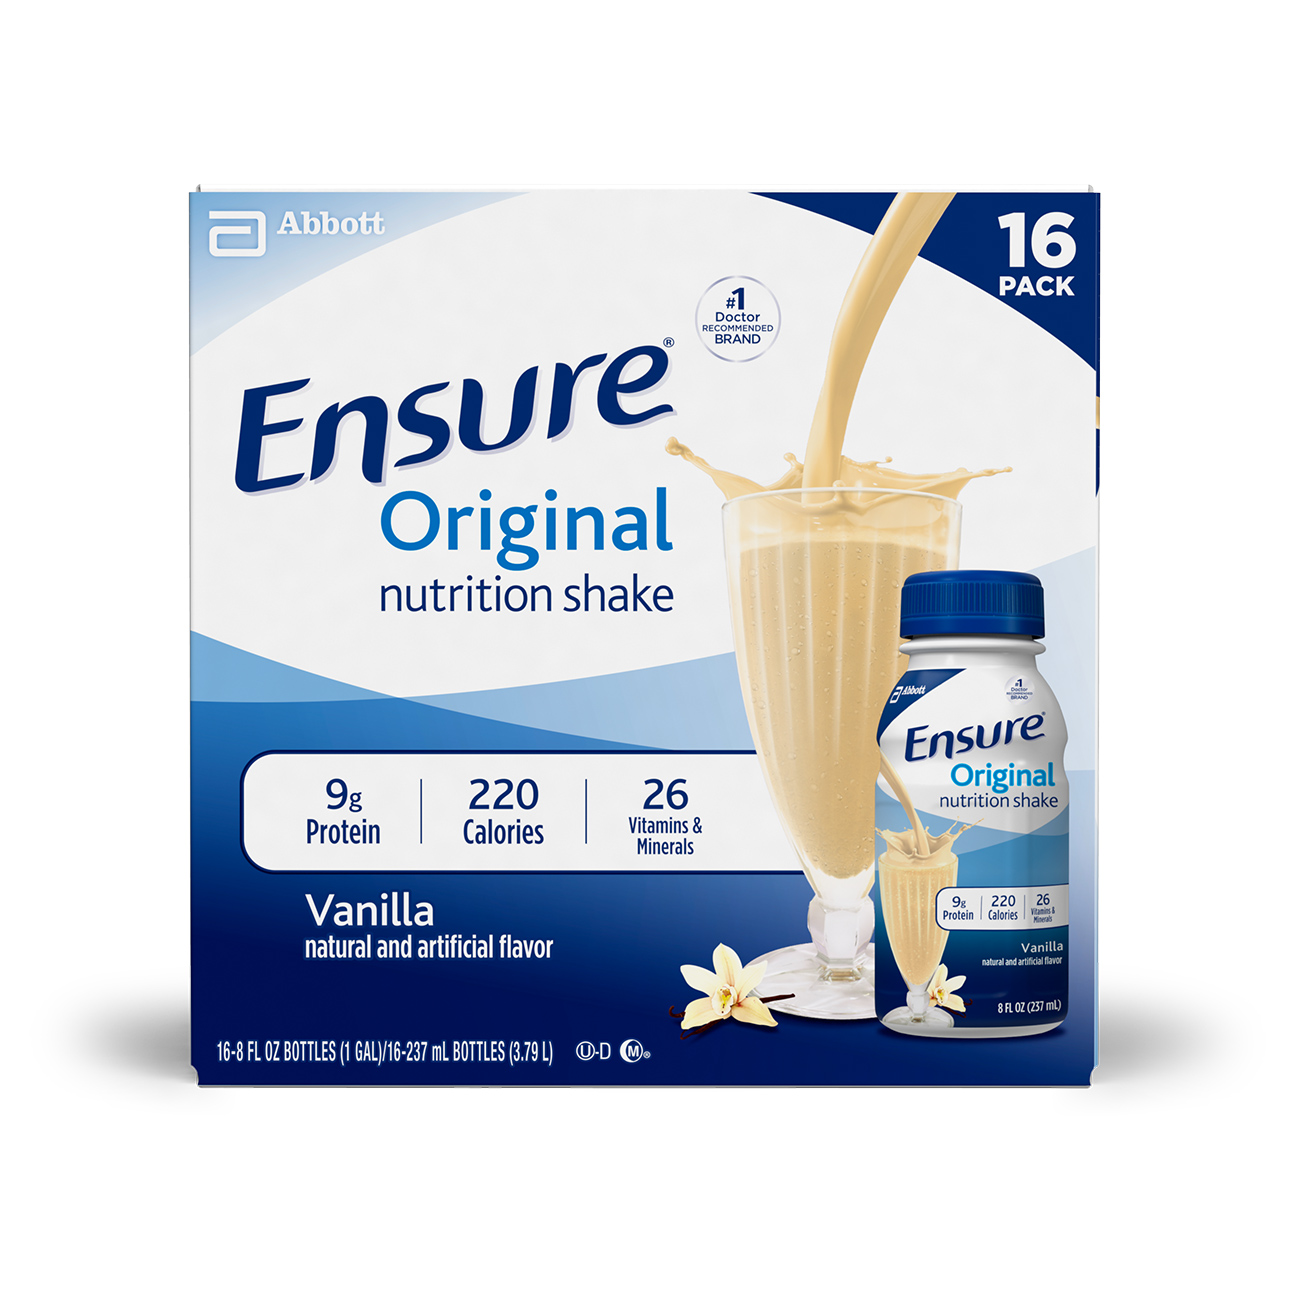 Ensure Original Nutrition Shake with 9 grams of protein, Meal Replacement Shakes, Vanilla, 8 fl oz, 16 Count